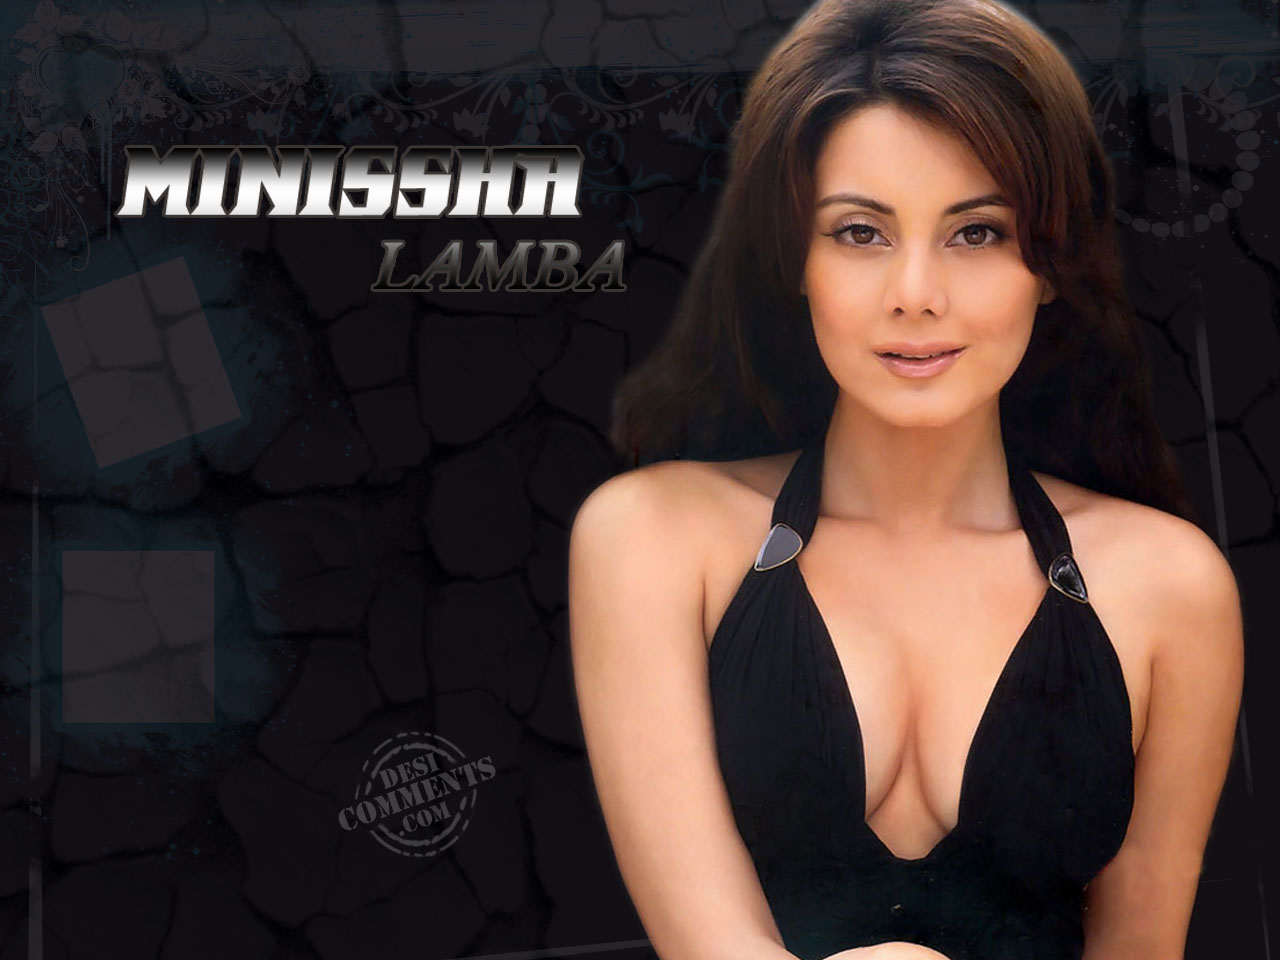 Bollywood Actress Minissha Lamba